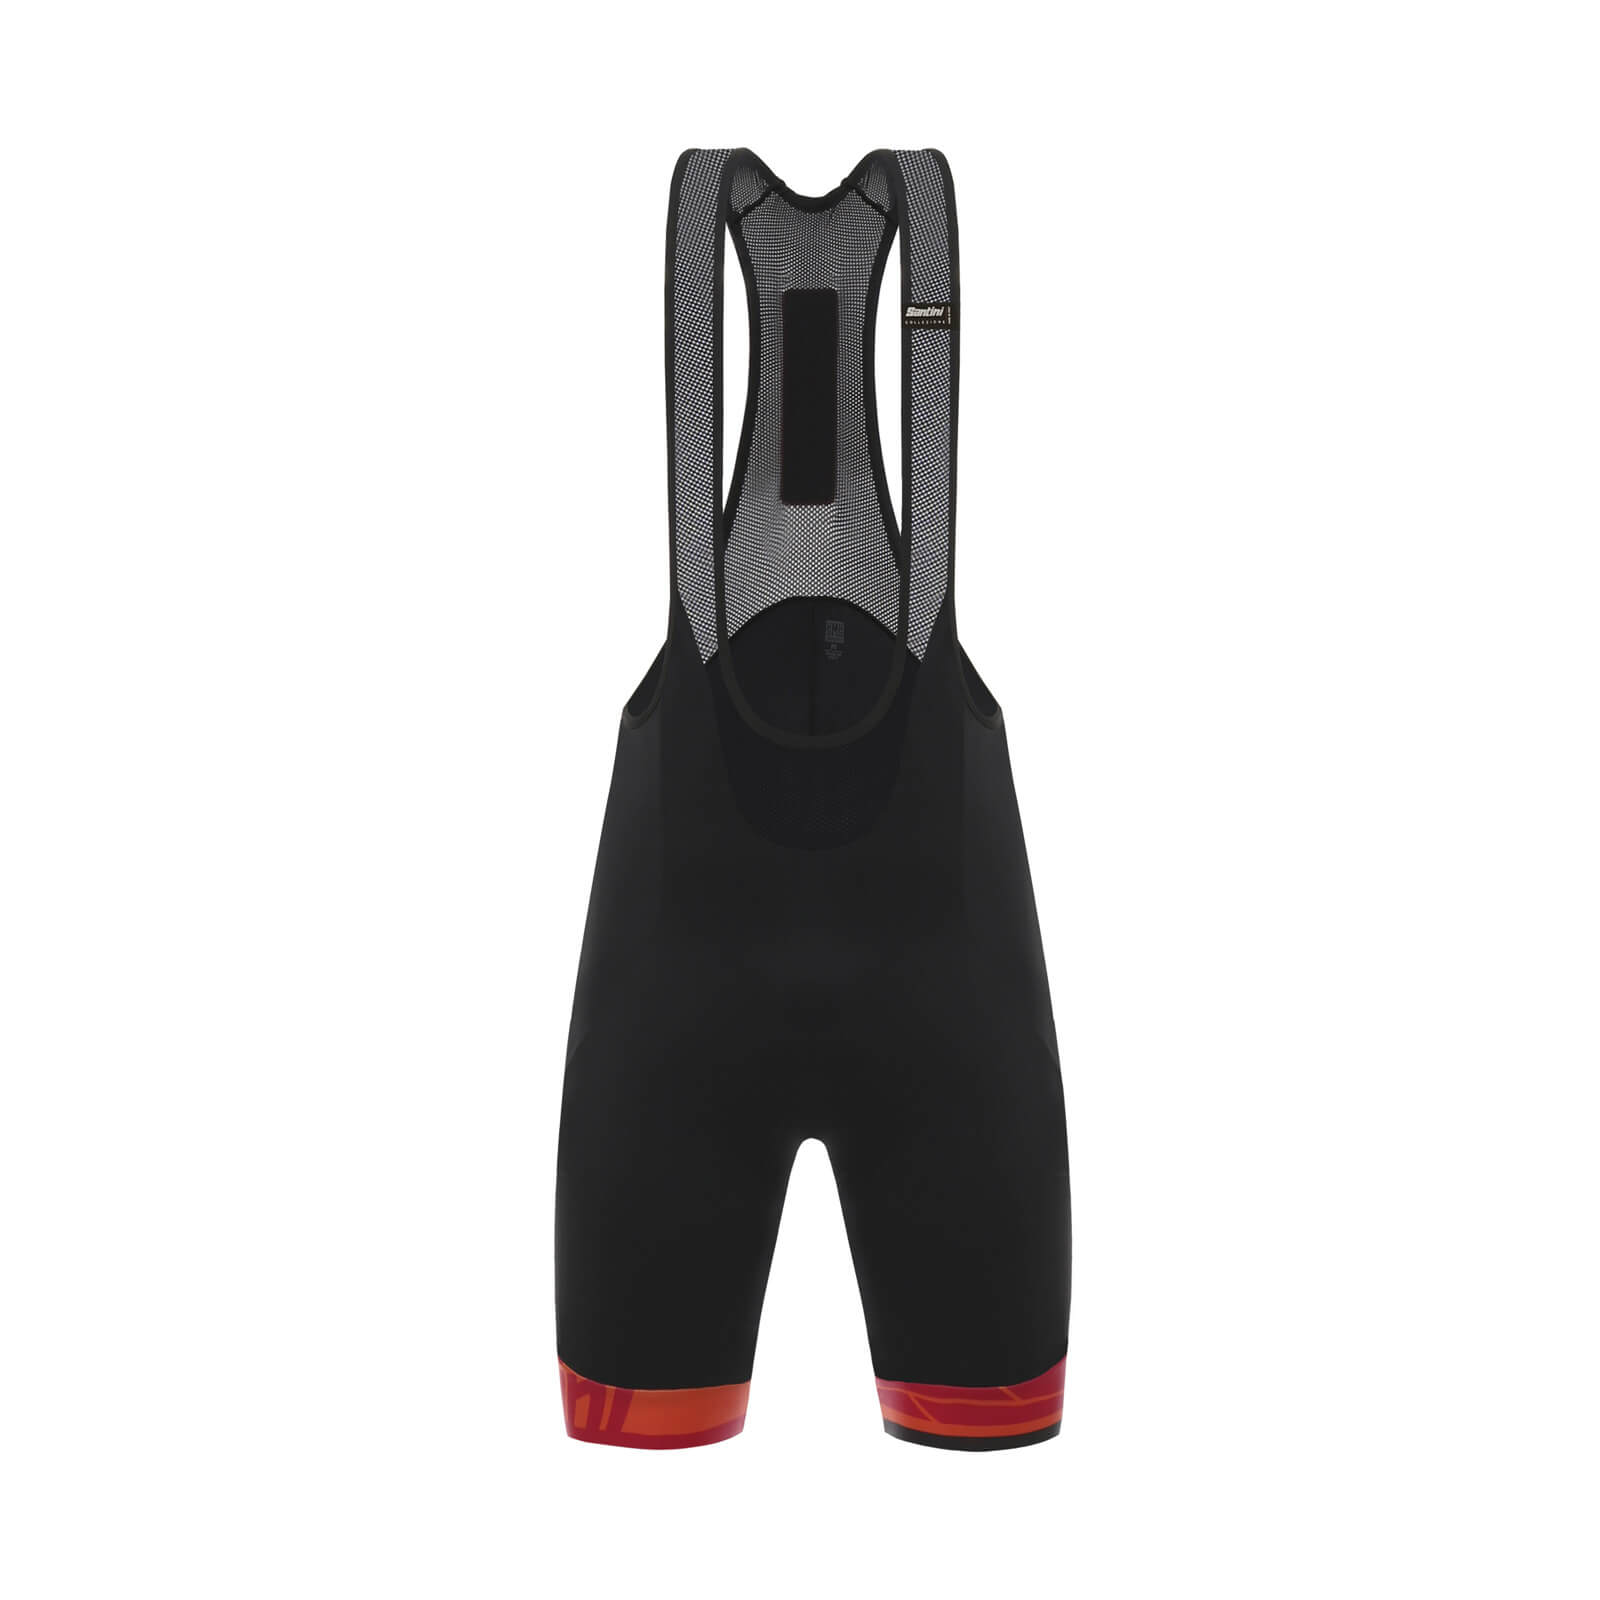 Santini Ace Elite Bib Shorts - Black/Red